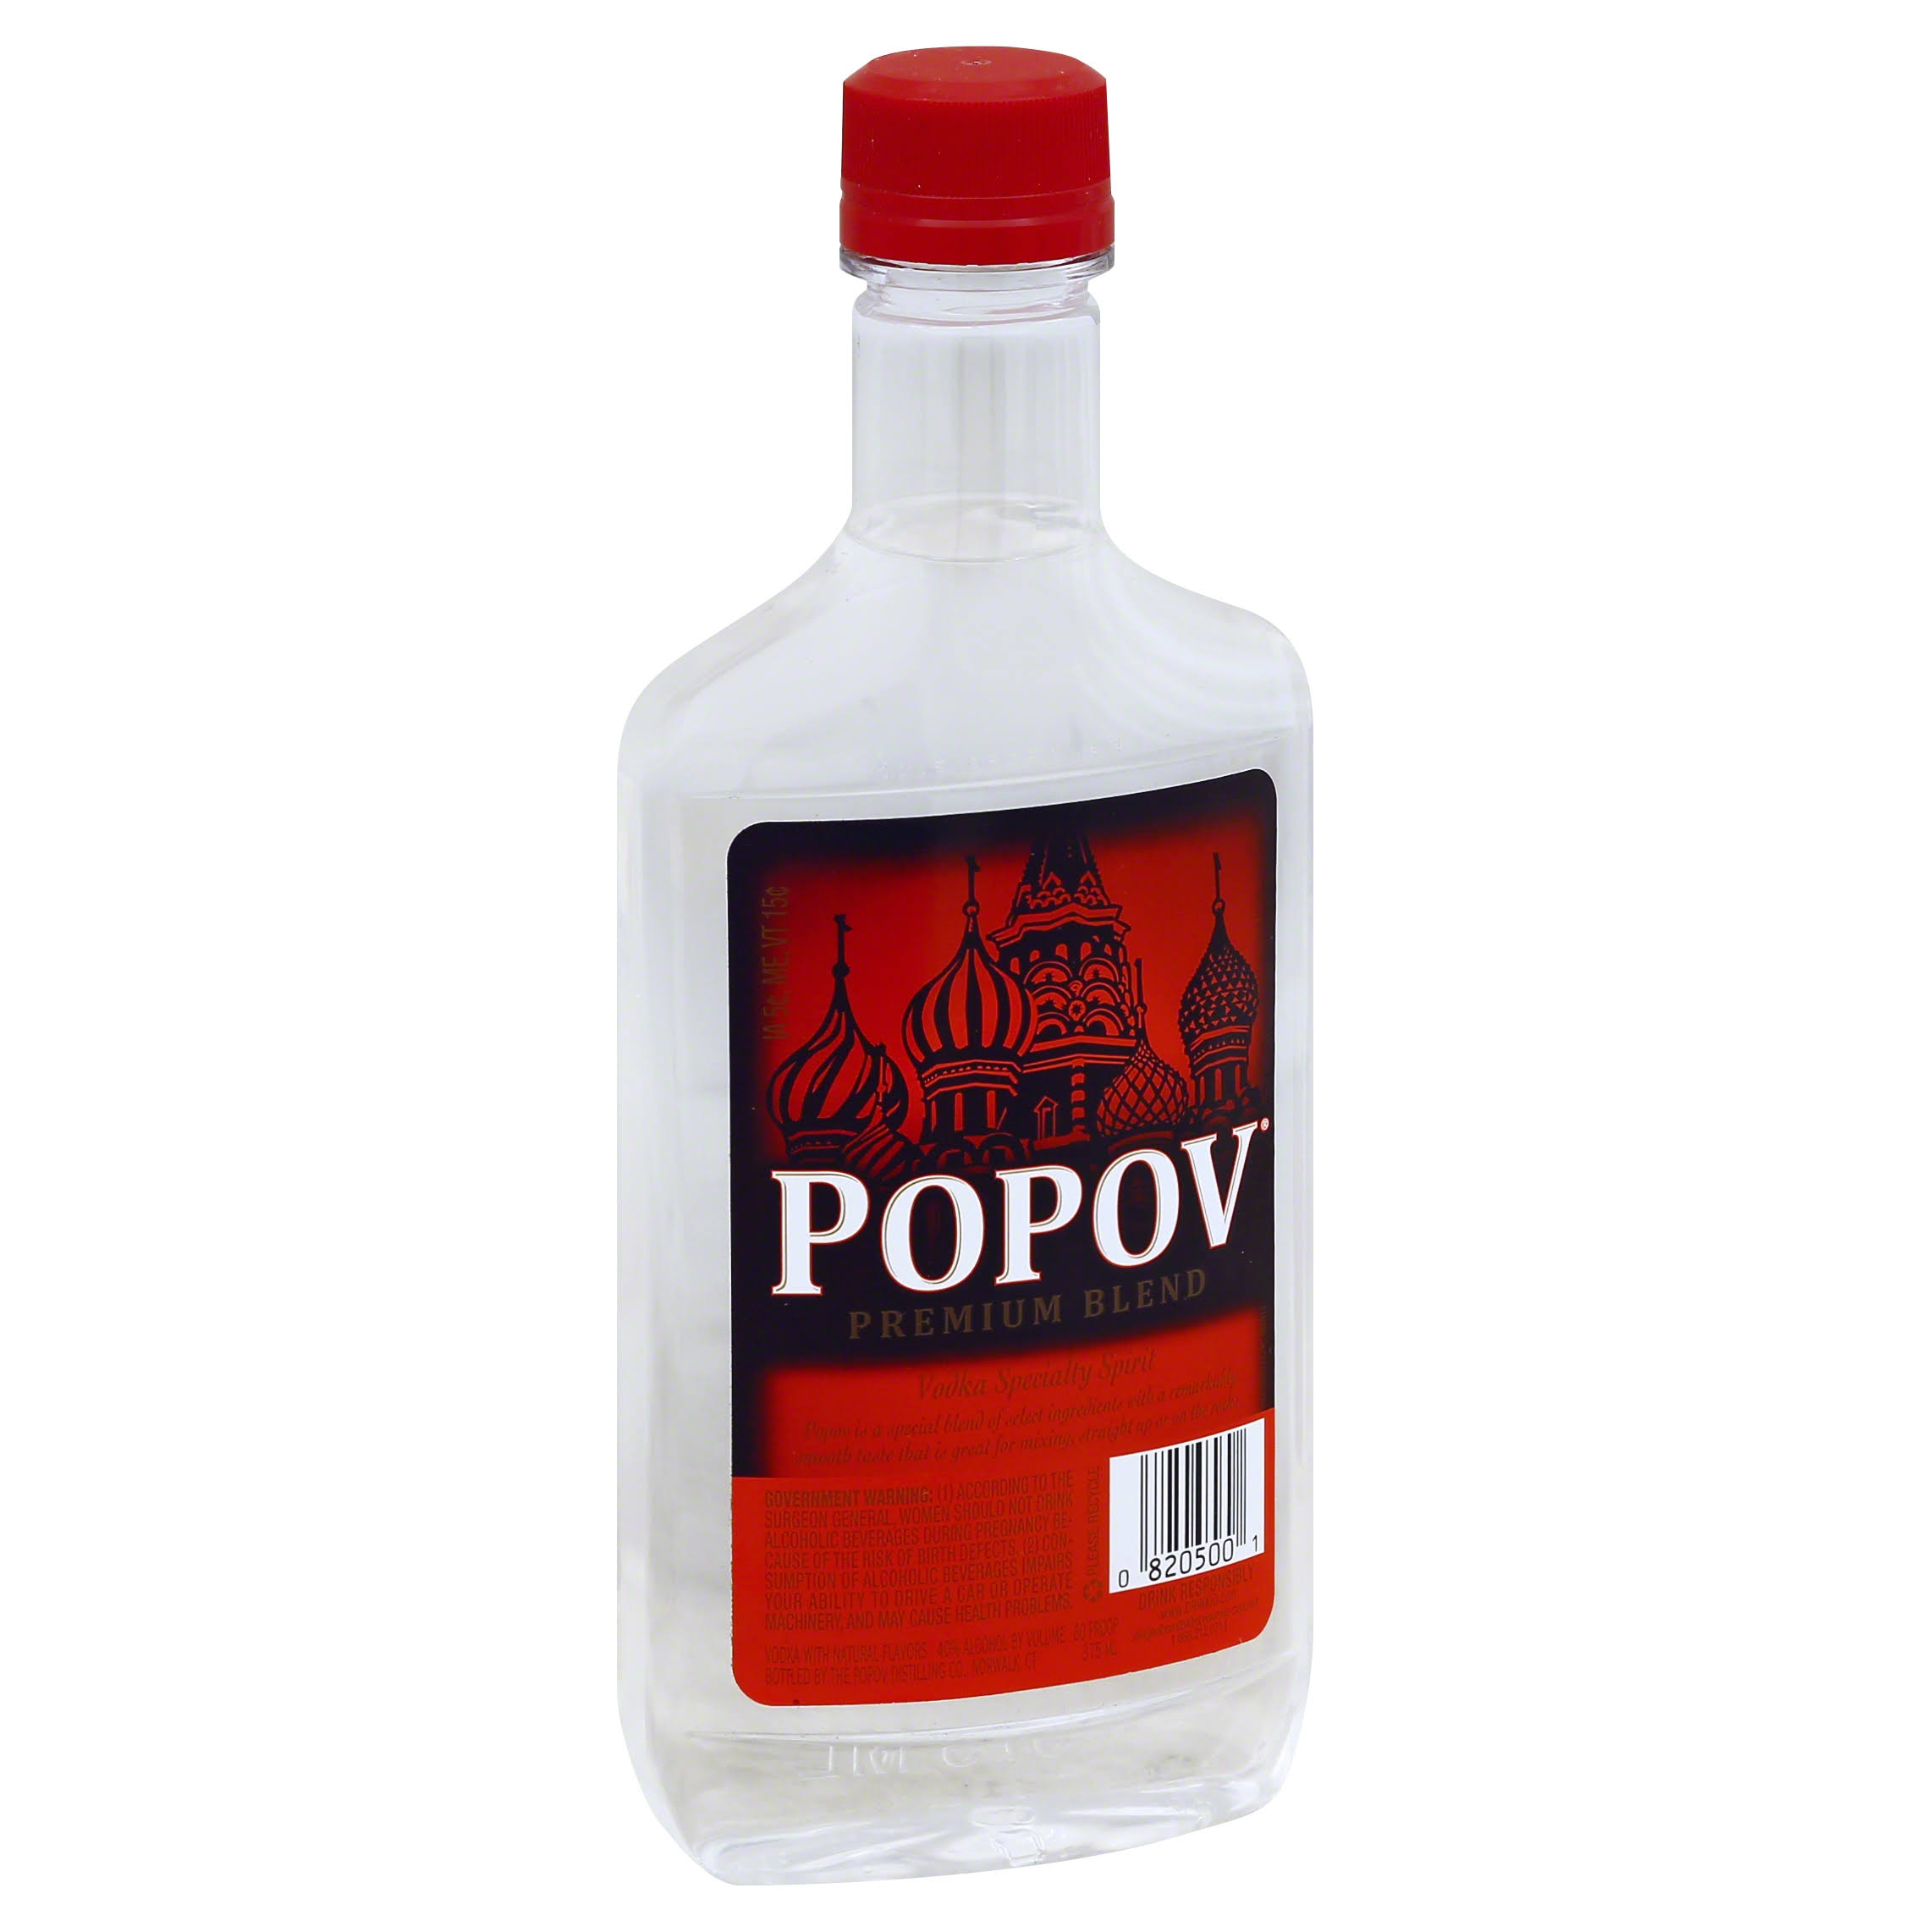 Popov Vodka - 375ml